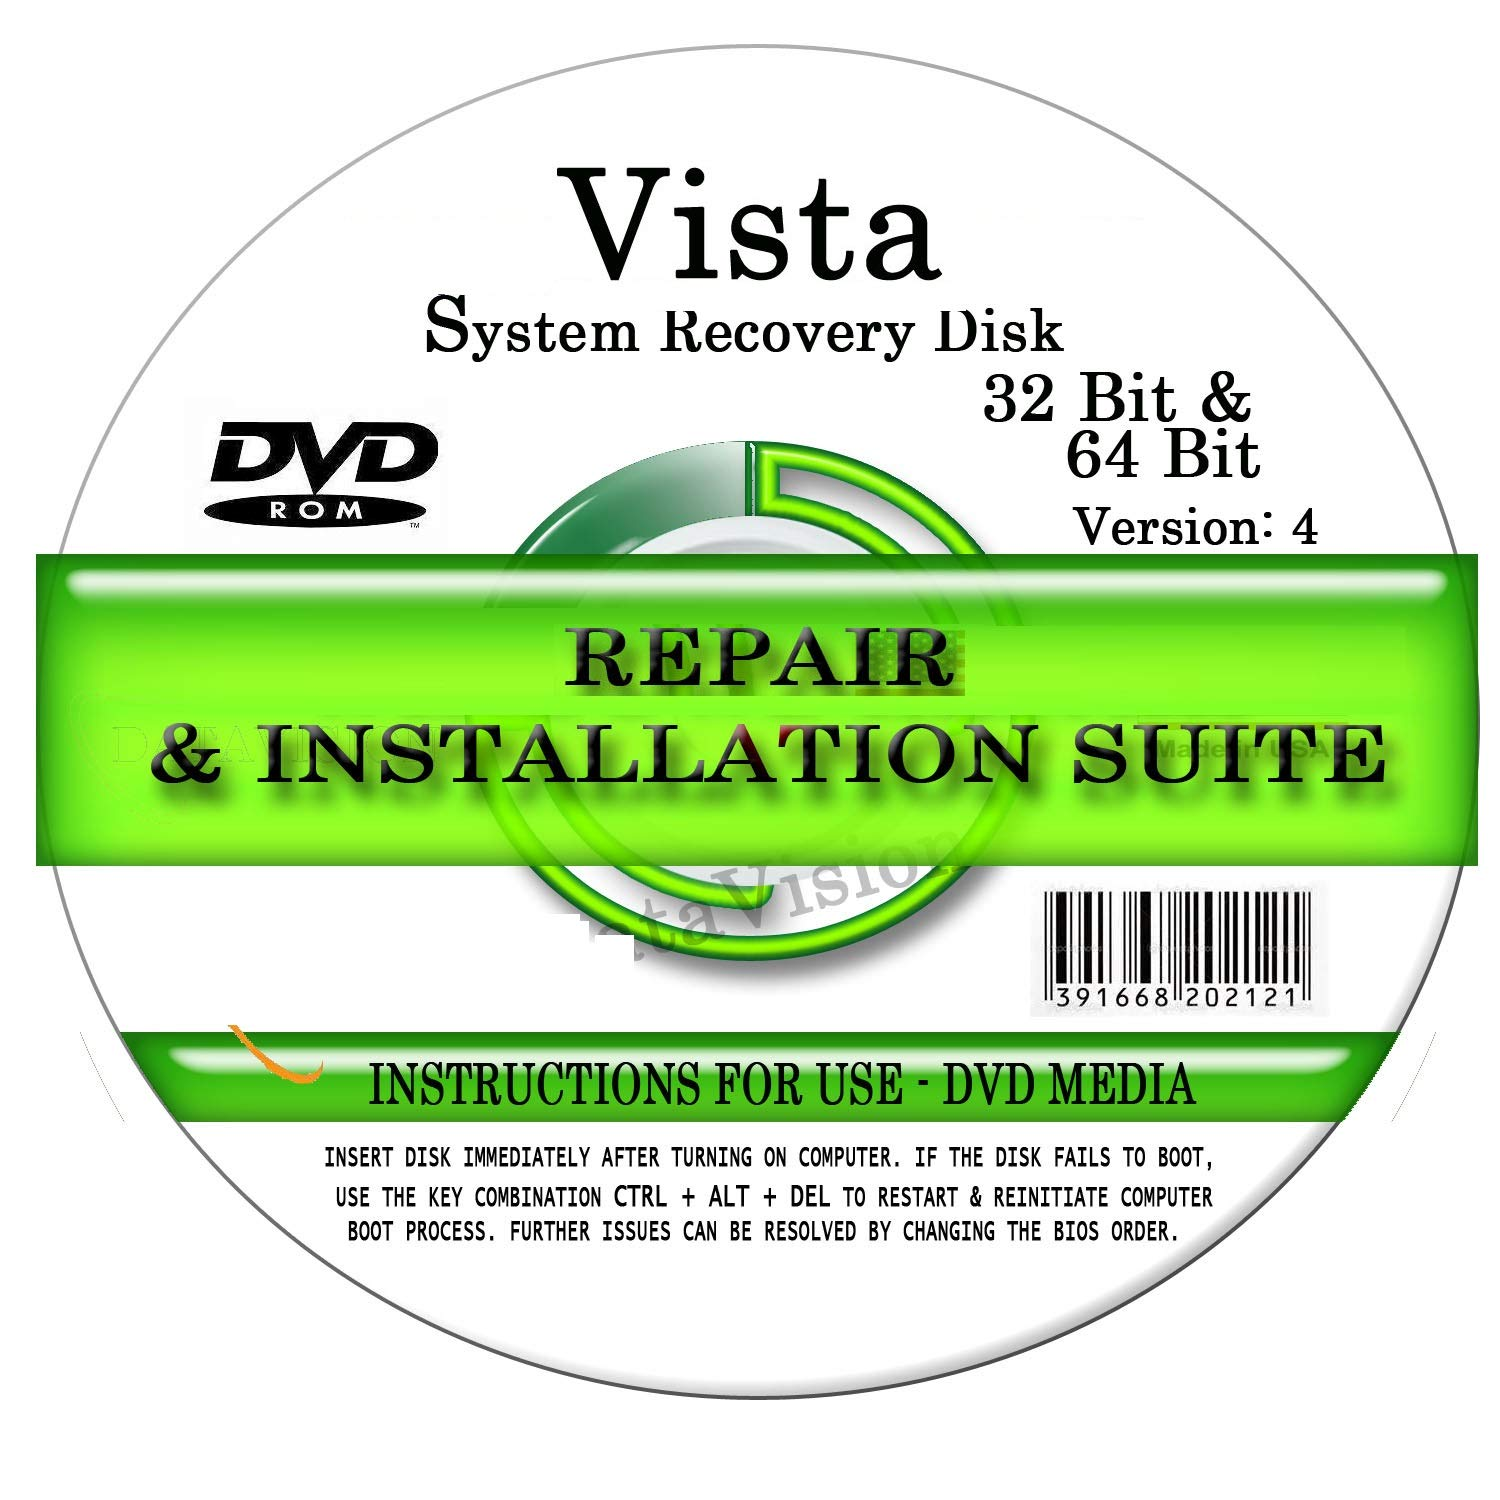 Advanced Repair Systems - Compatible WIN VISTA SYSTEM REPAIR & RE-INSTALL 32 Bit & 64 Bit BOOT DISK: Repair & Re-install Basic, Home, Premium and Ultimate by Advanced Repair Systems